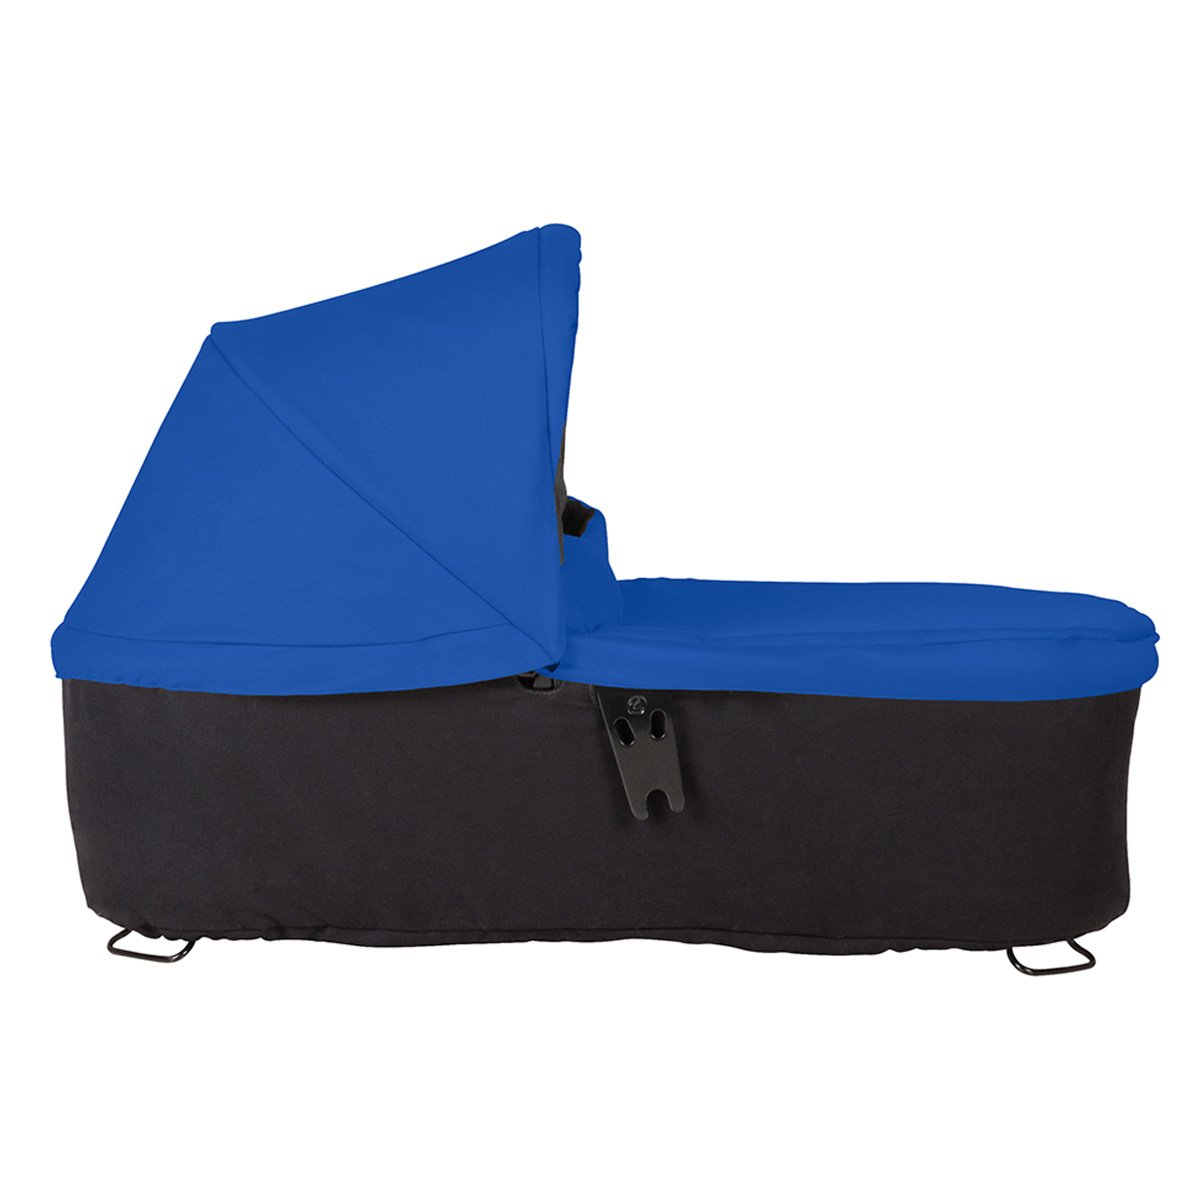 Mountain Buggy Carrycot+ for Duet, Marine, Blue